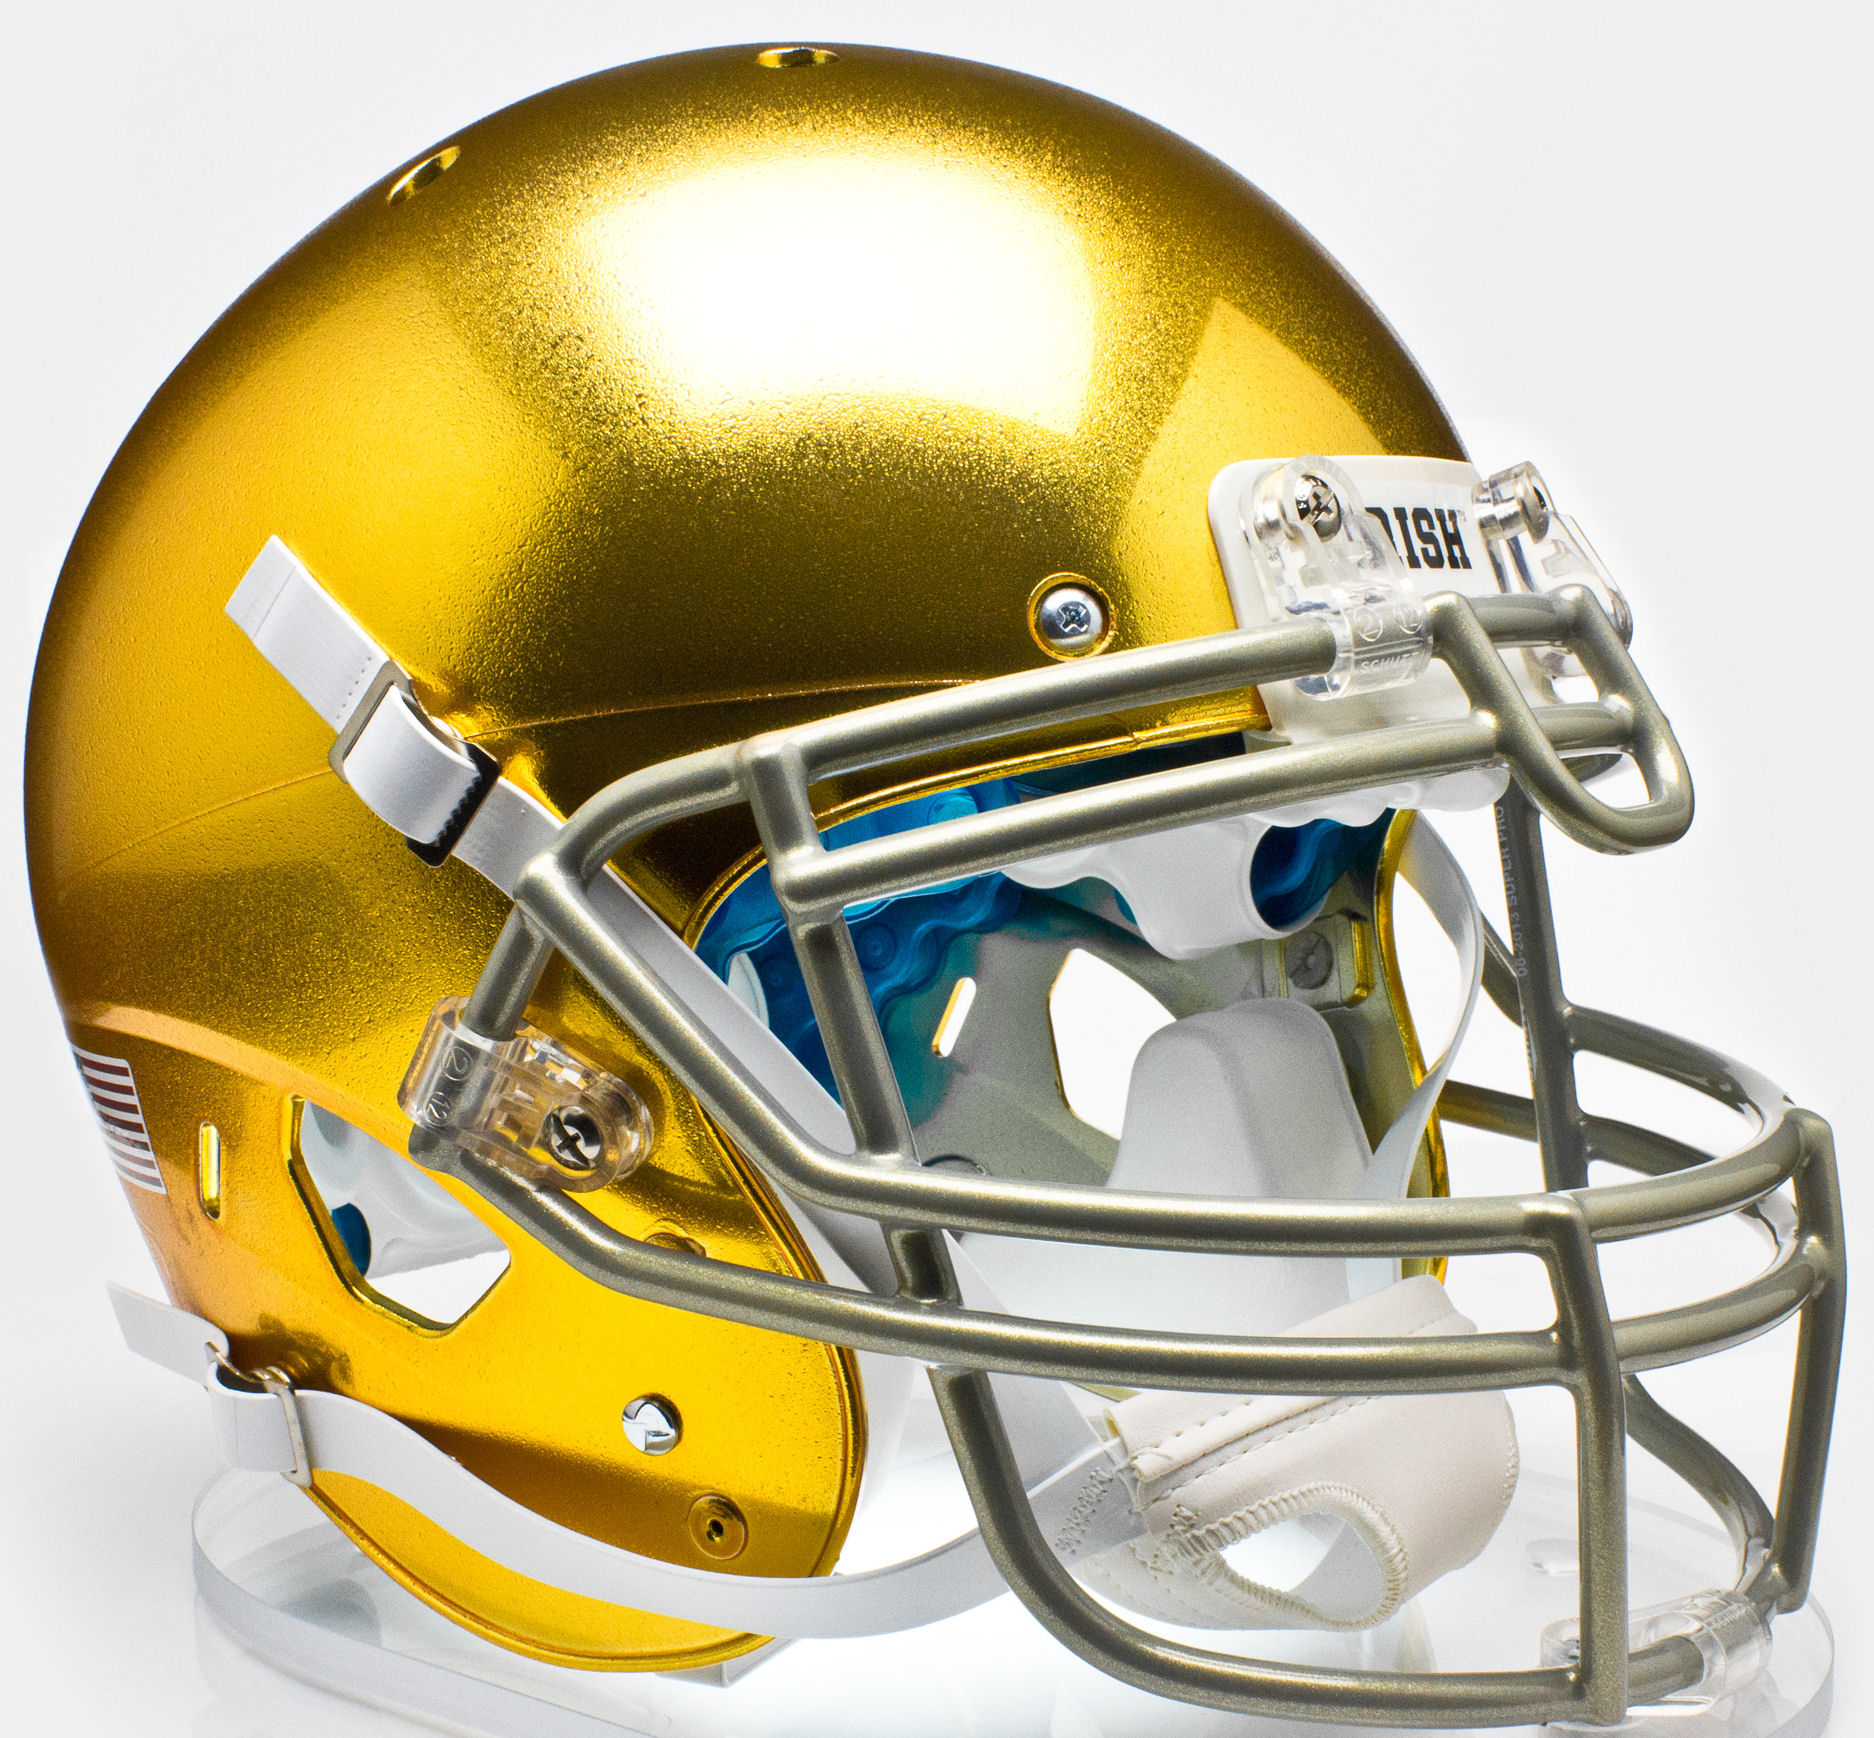 3ea2bb11ba5c Notre Dame Fighting Irish Authentic Schutt XP Full Size Helmet - Textured  with Metallic Facemask